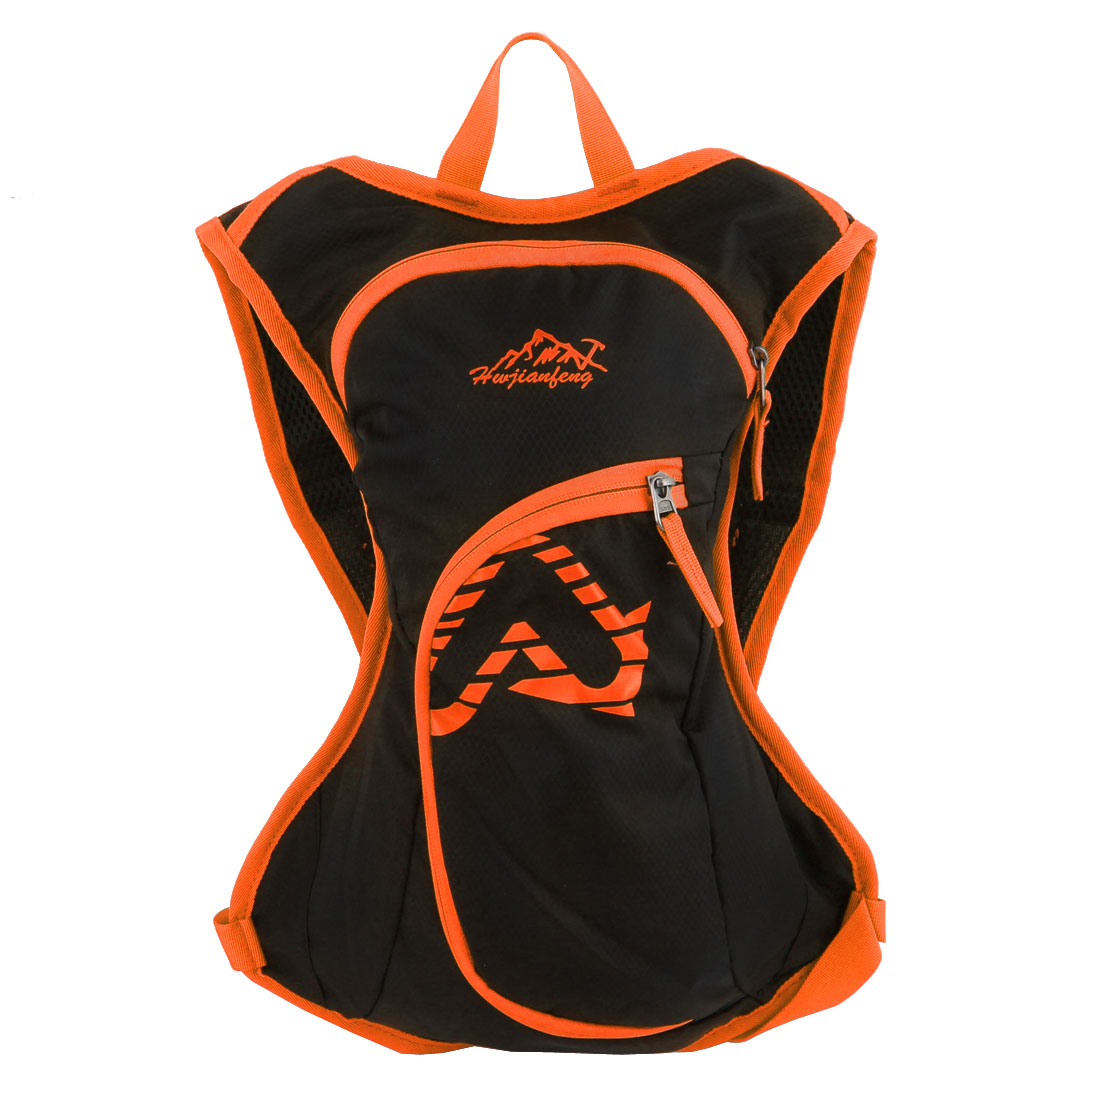 HWJIANFENG Authorized Mountaineering Pack Cycling Sport Backpack Orange 20L